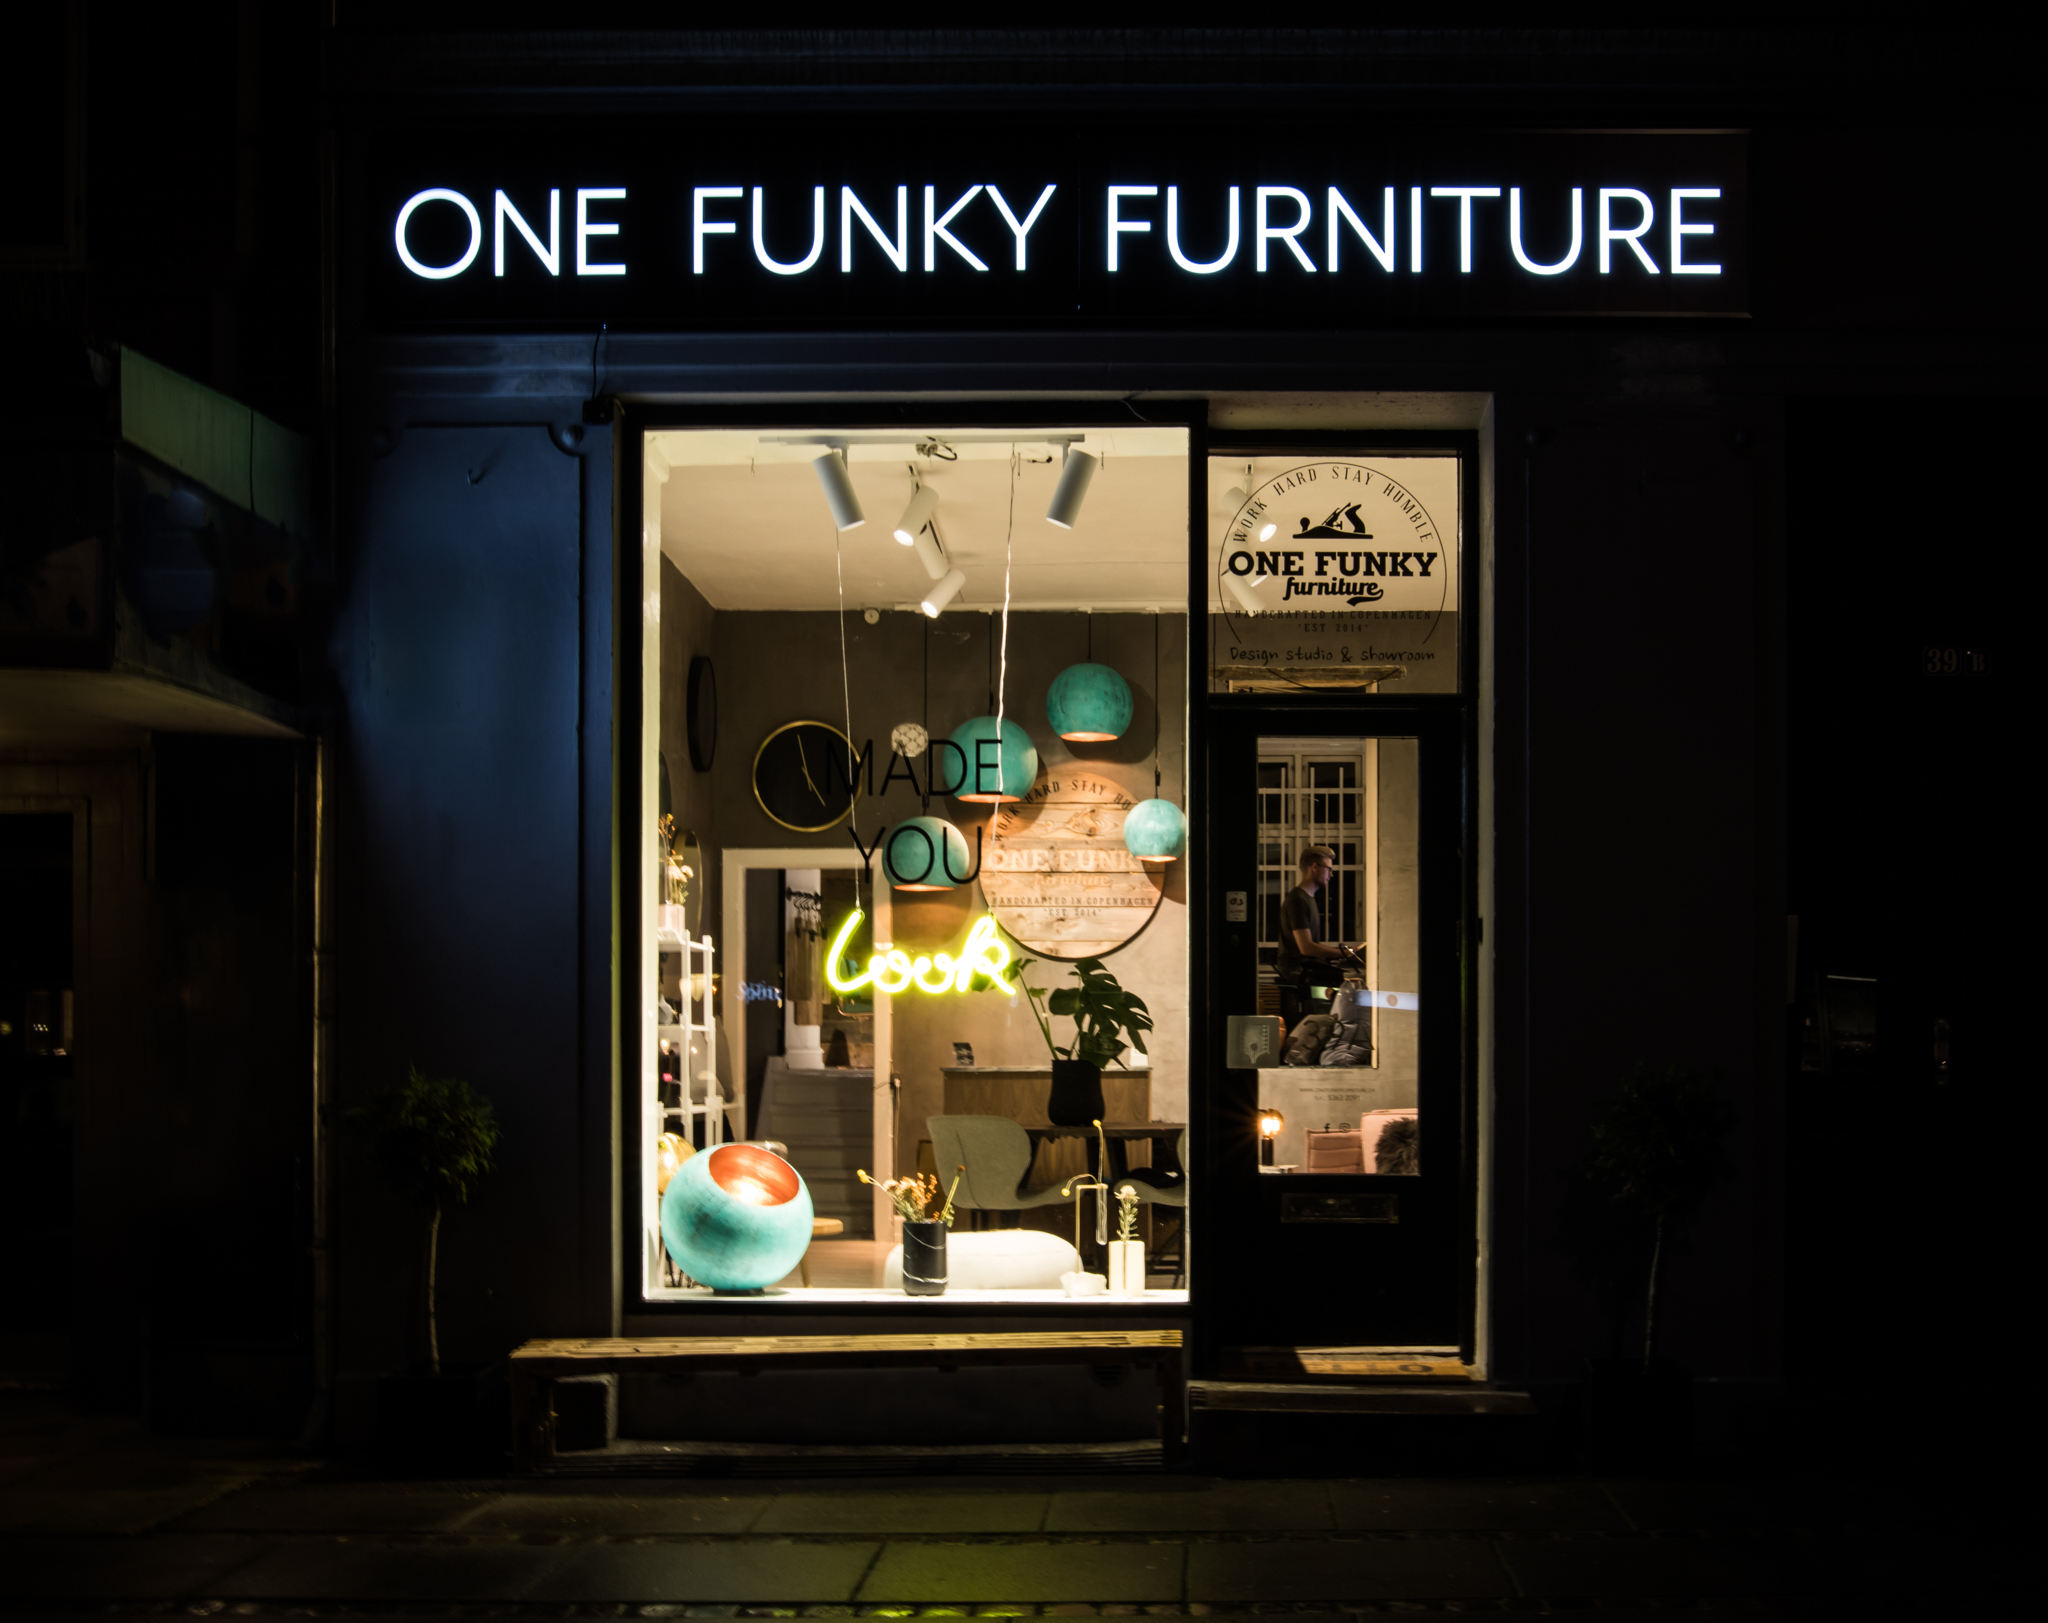 One Funky Furniture verlichting